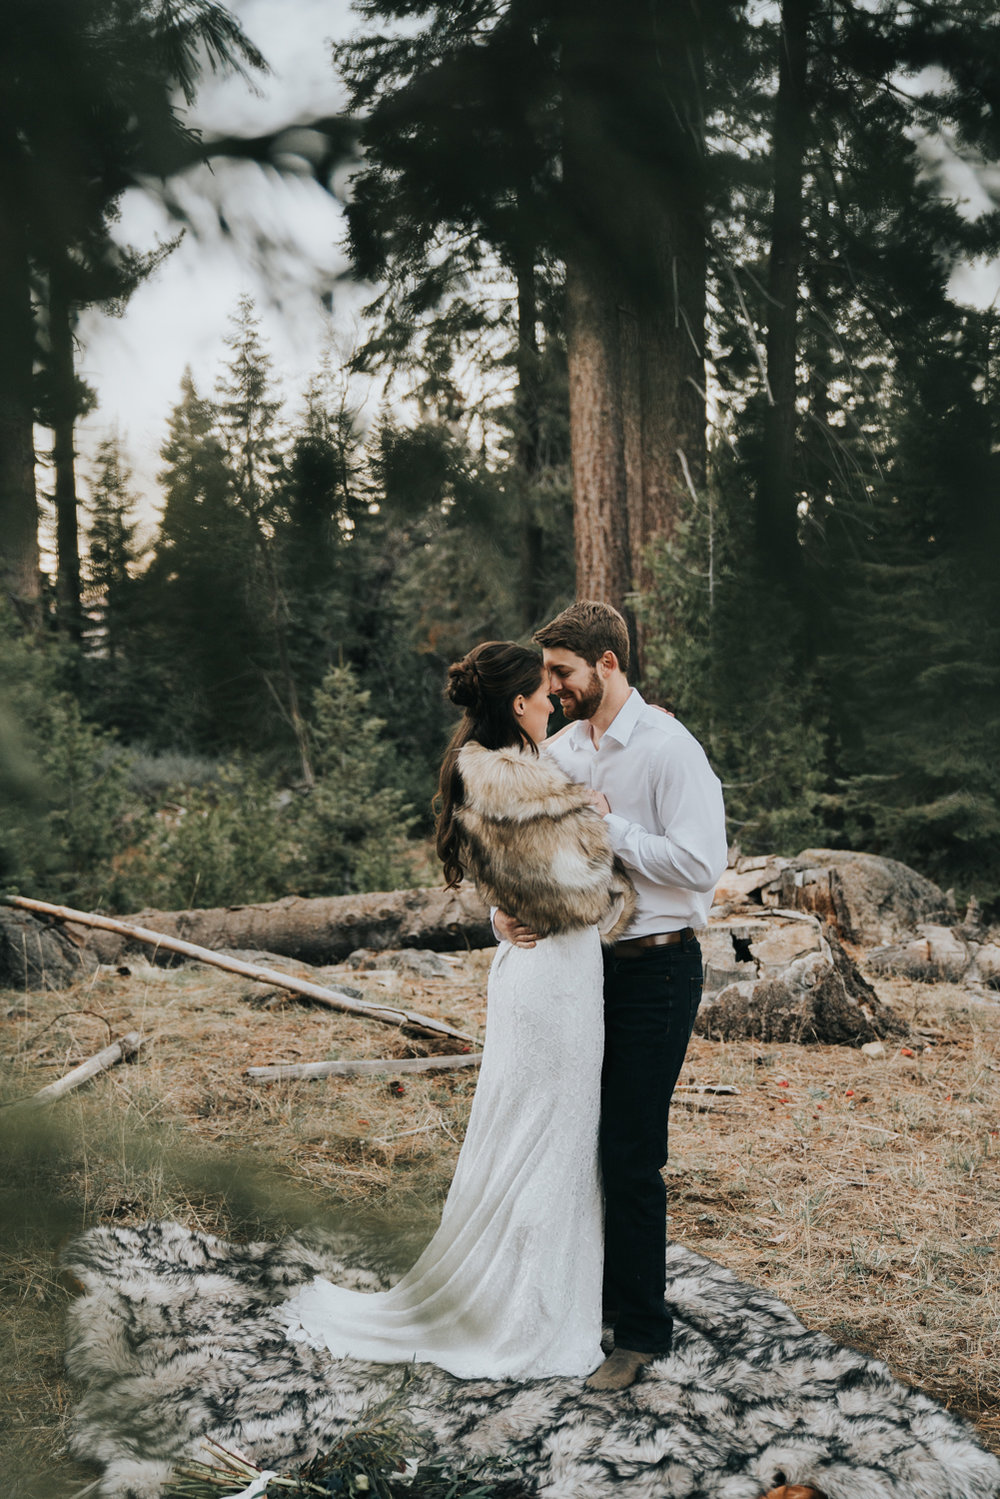 Mountain Elopement in Shaver Lake California by Bessie Young Photography Wild Elopement - Adventure Elopement-87.jpg